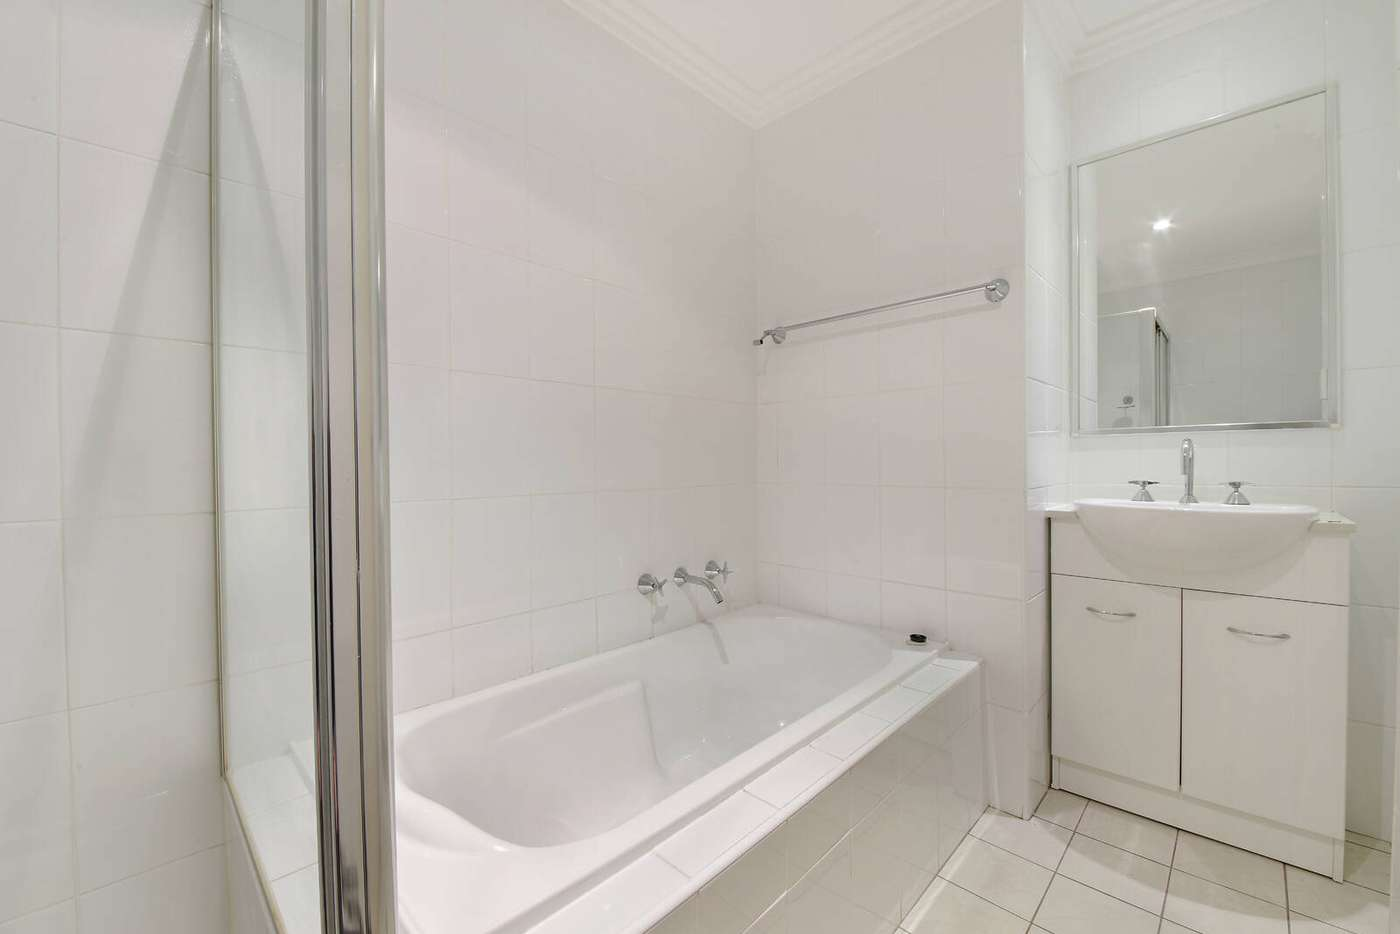 Sixth view of Homely apartment listing, 32/24-28 College Crescent, Hornsby NSW 2077